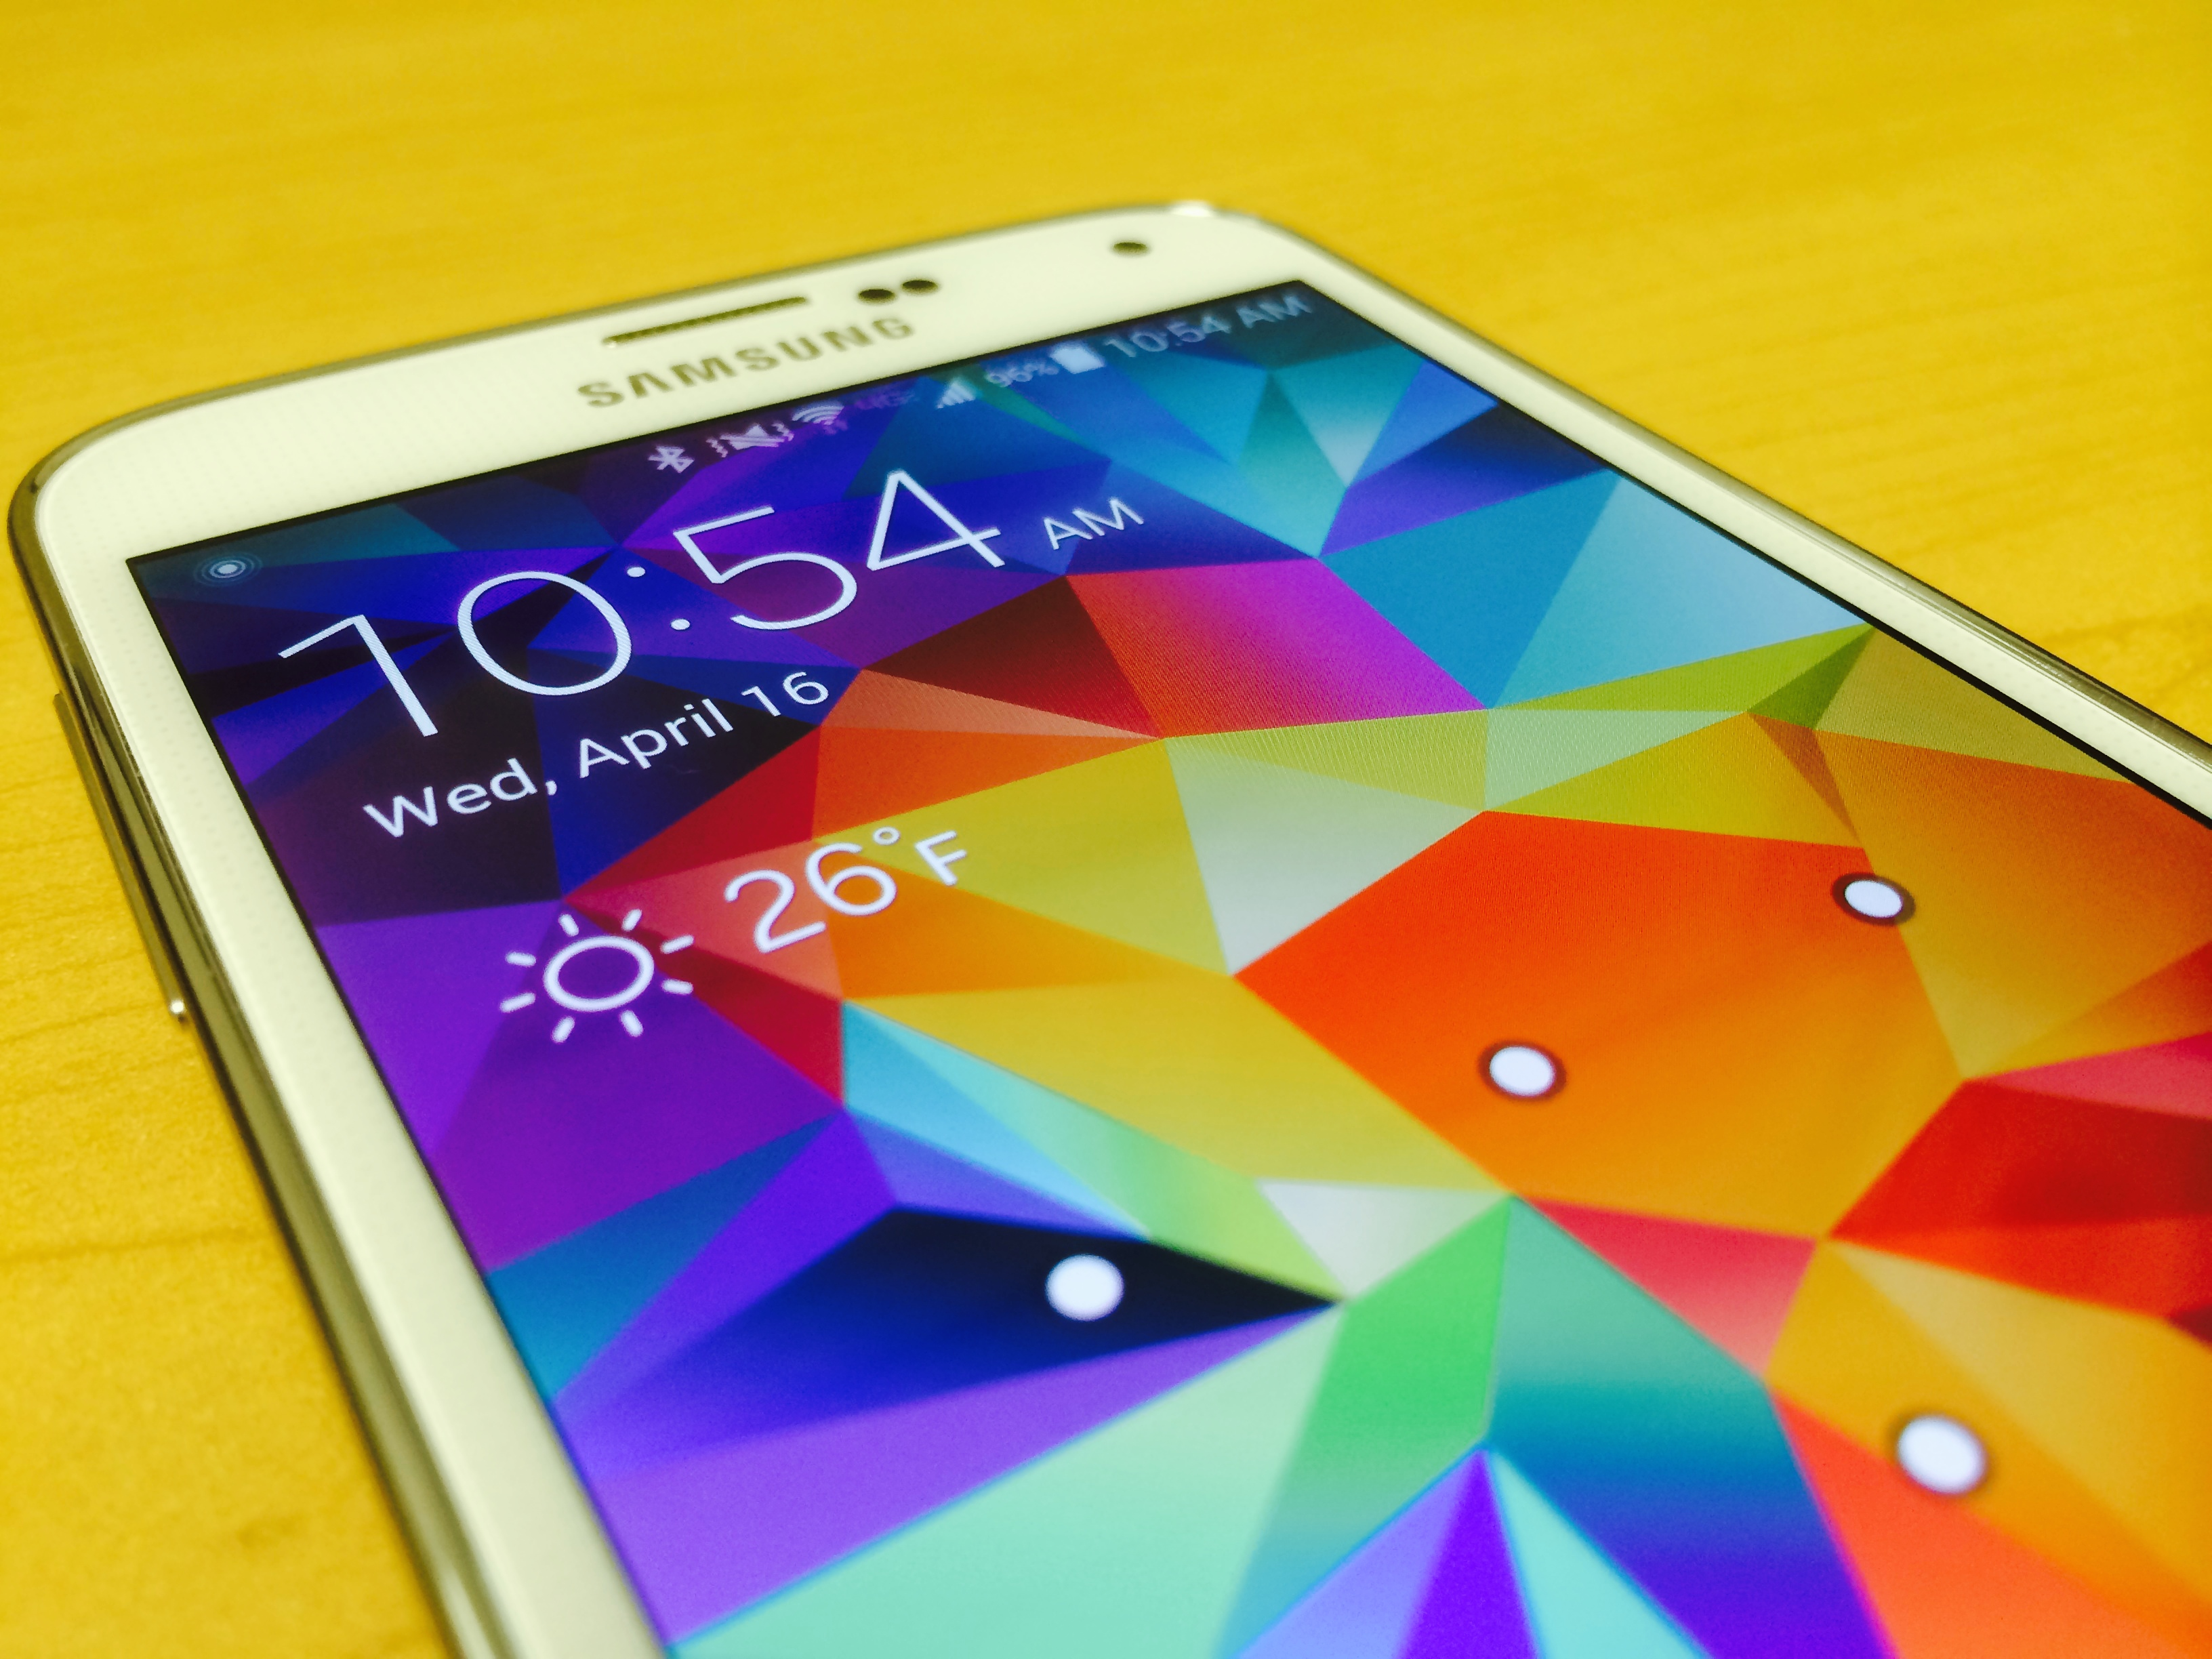 Samsung Galaxy S5 – Unboxing and First Look